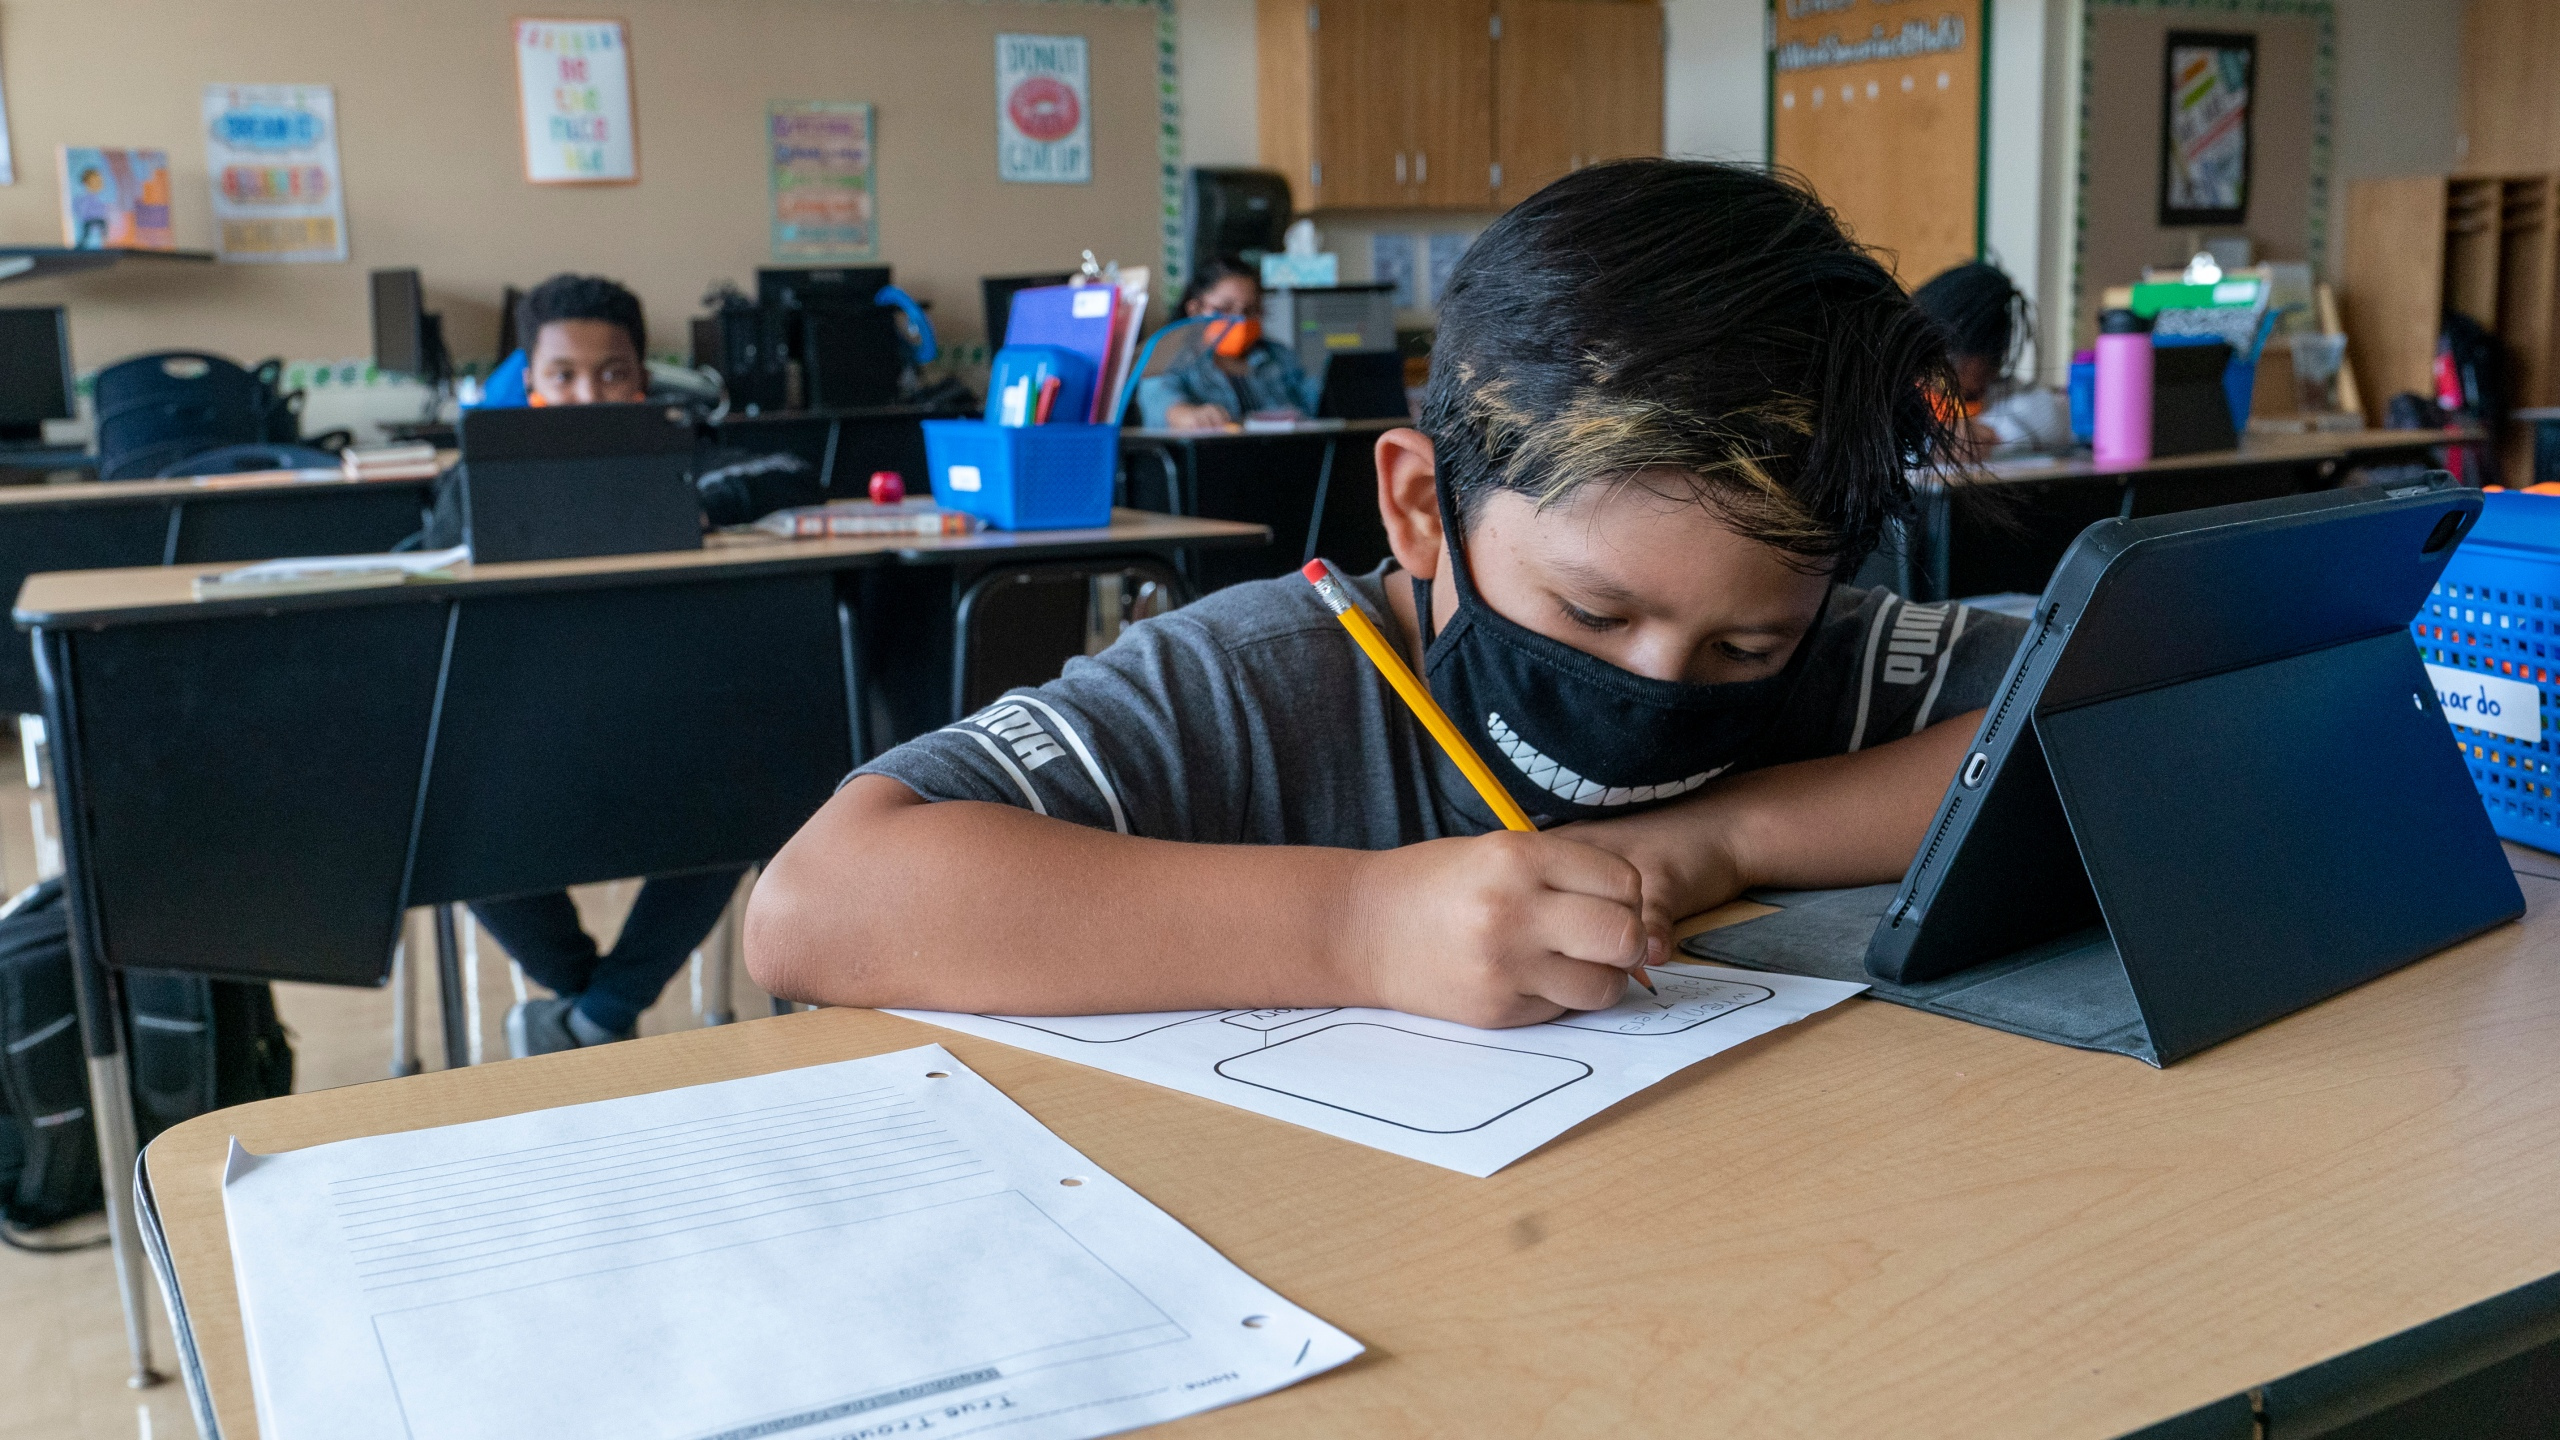 MCPSS will not mandate masks in schools but 'strongly recommends' them